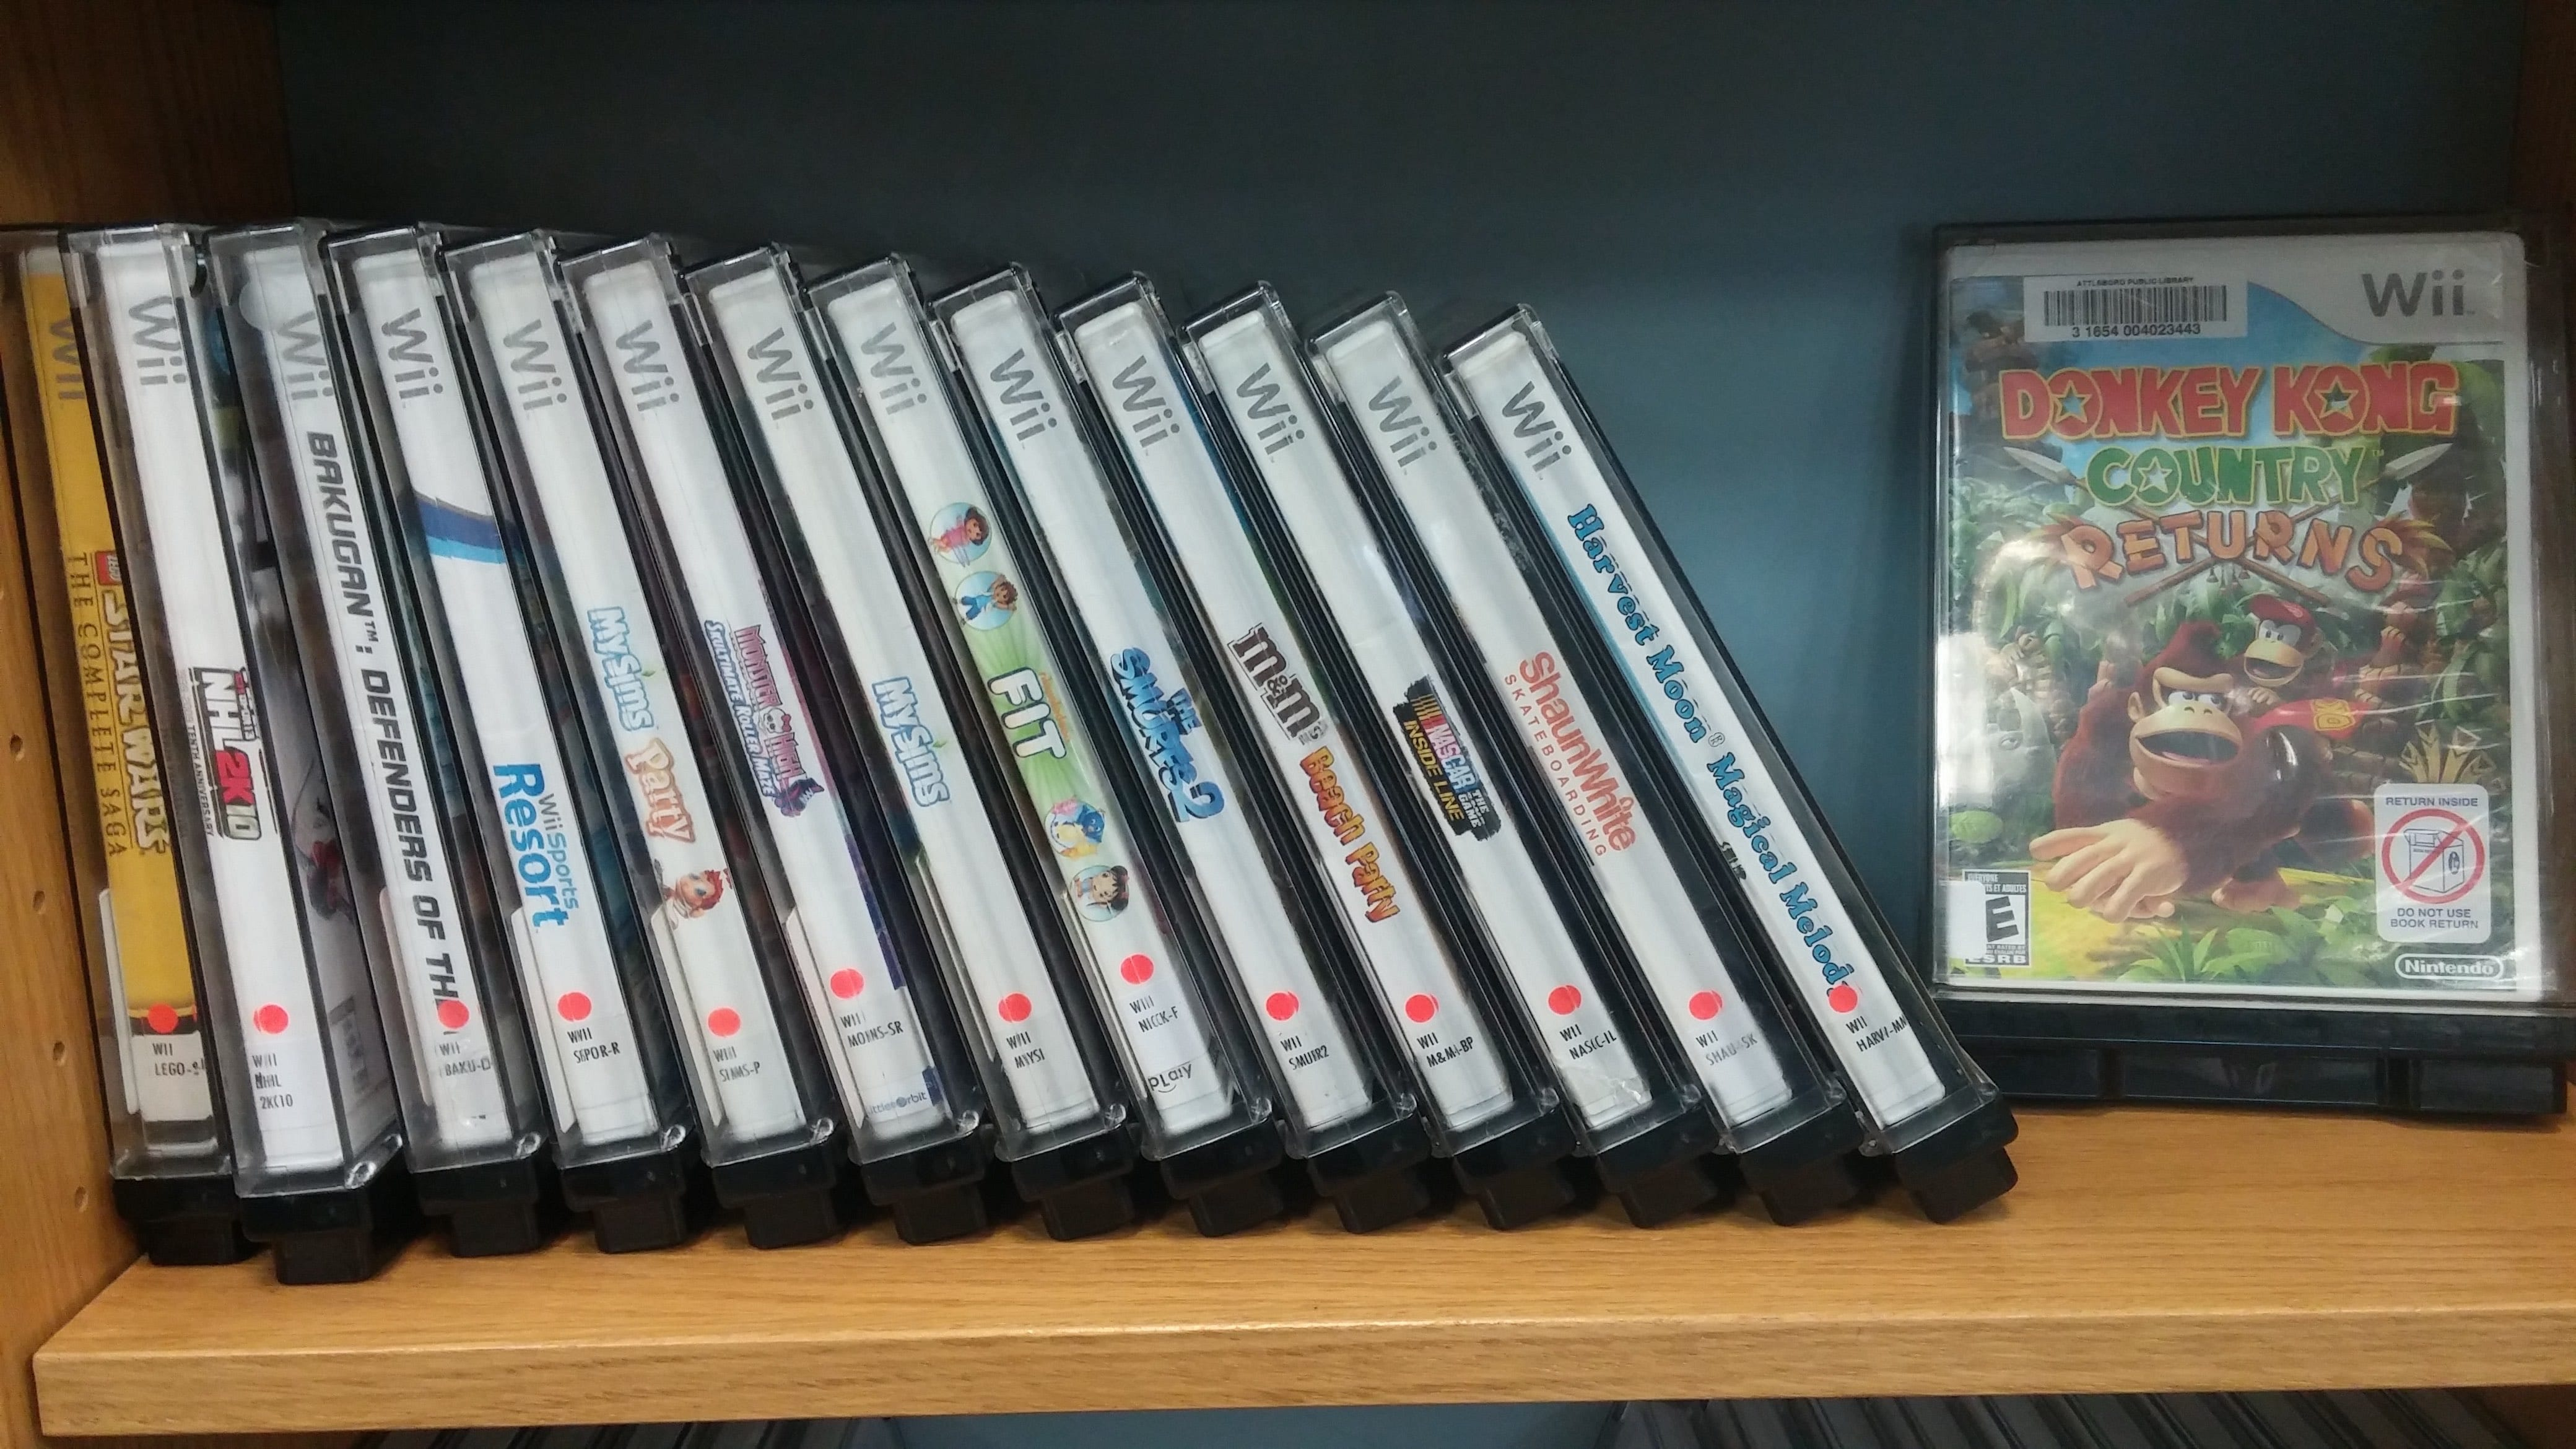 Need a gaming fix? Low on Cash? Look to the Library!